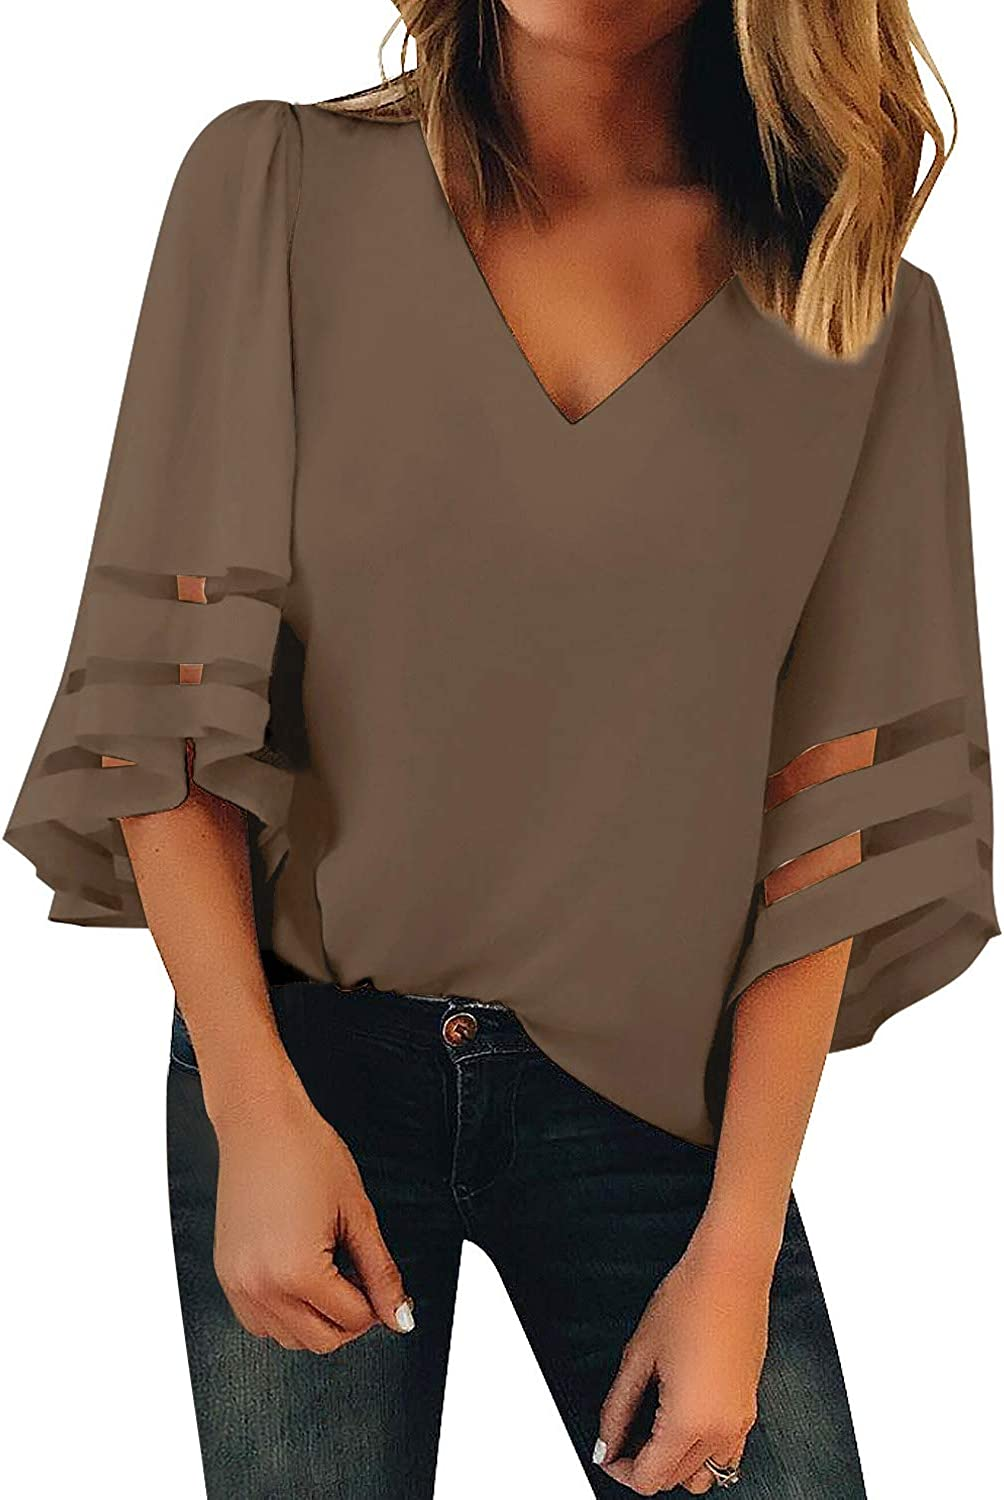 Bdcoco Womens 3/4 Bell Sleeve V Neck Mesh Patchwork Blouse Tops Casual Loose Shirts